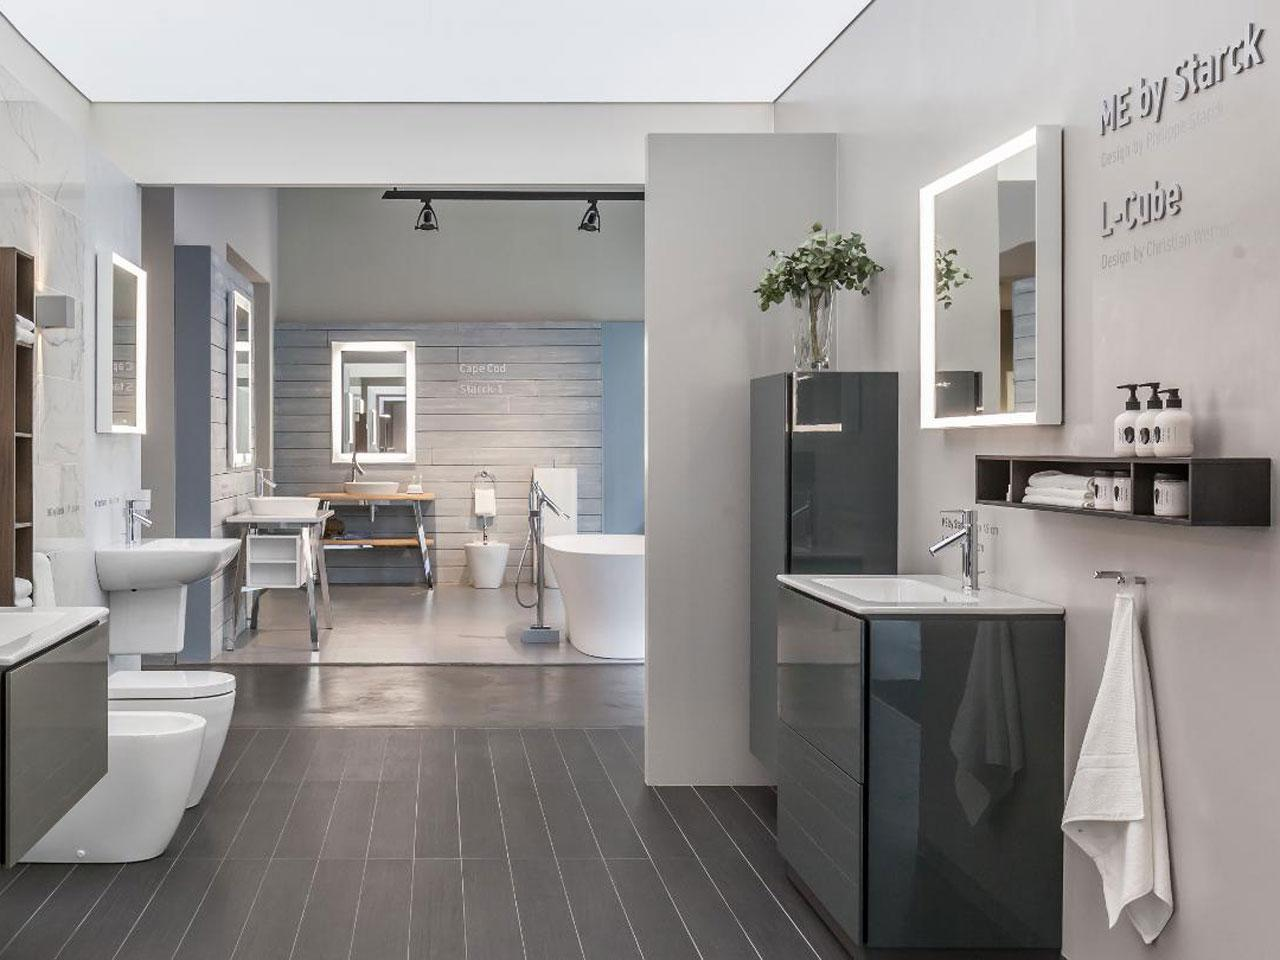 Duravit al salone del mobile di milano 2018 tante le for Salone del mobile 3018